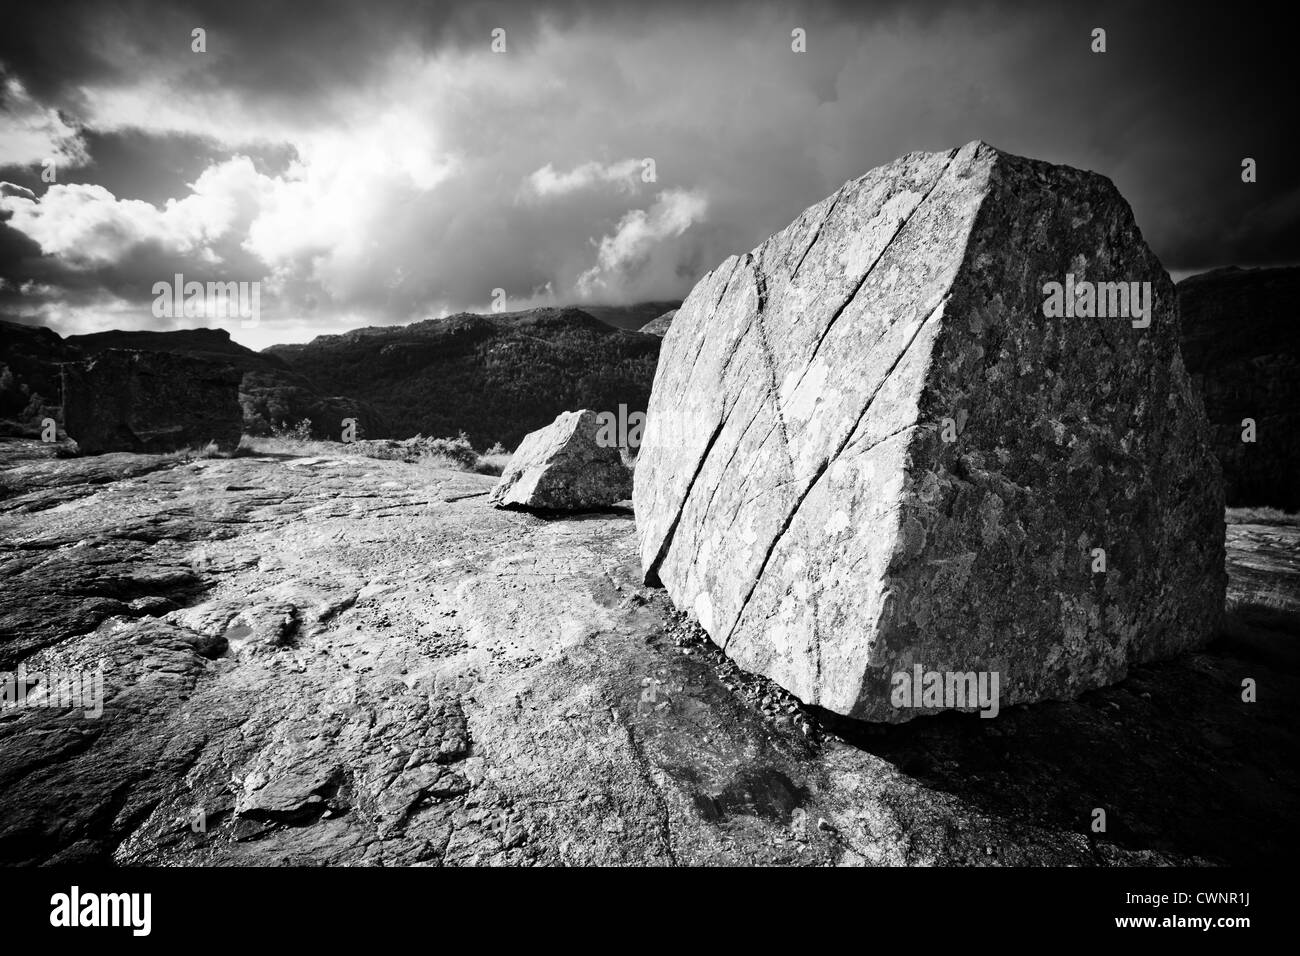 Big stone on mountain top in norway black and white